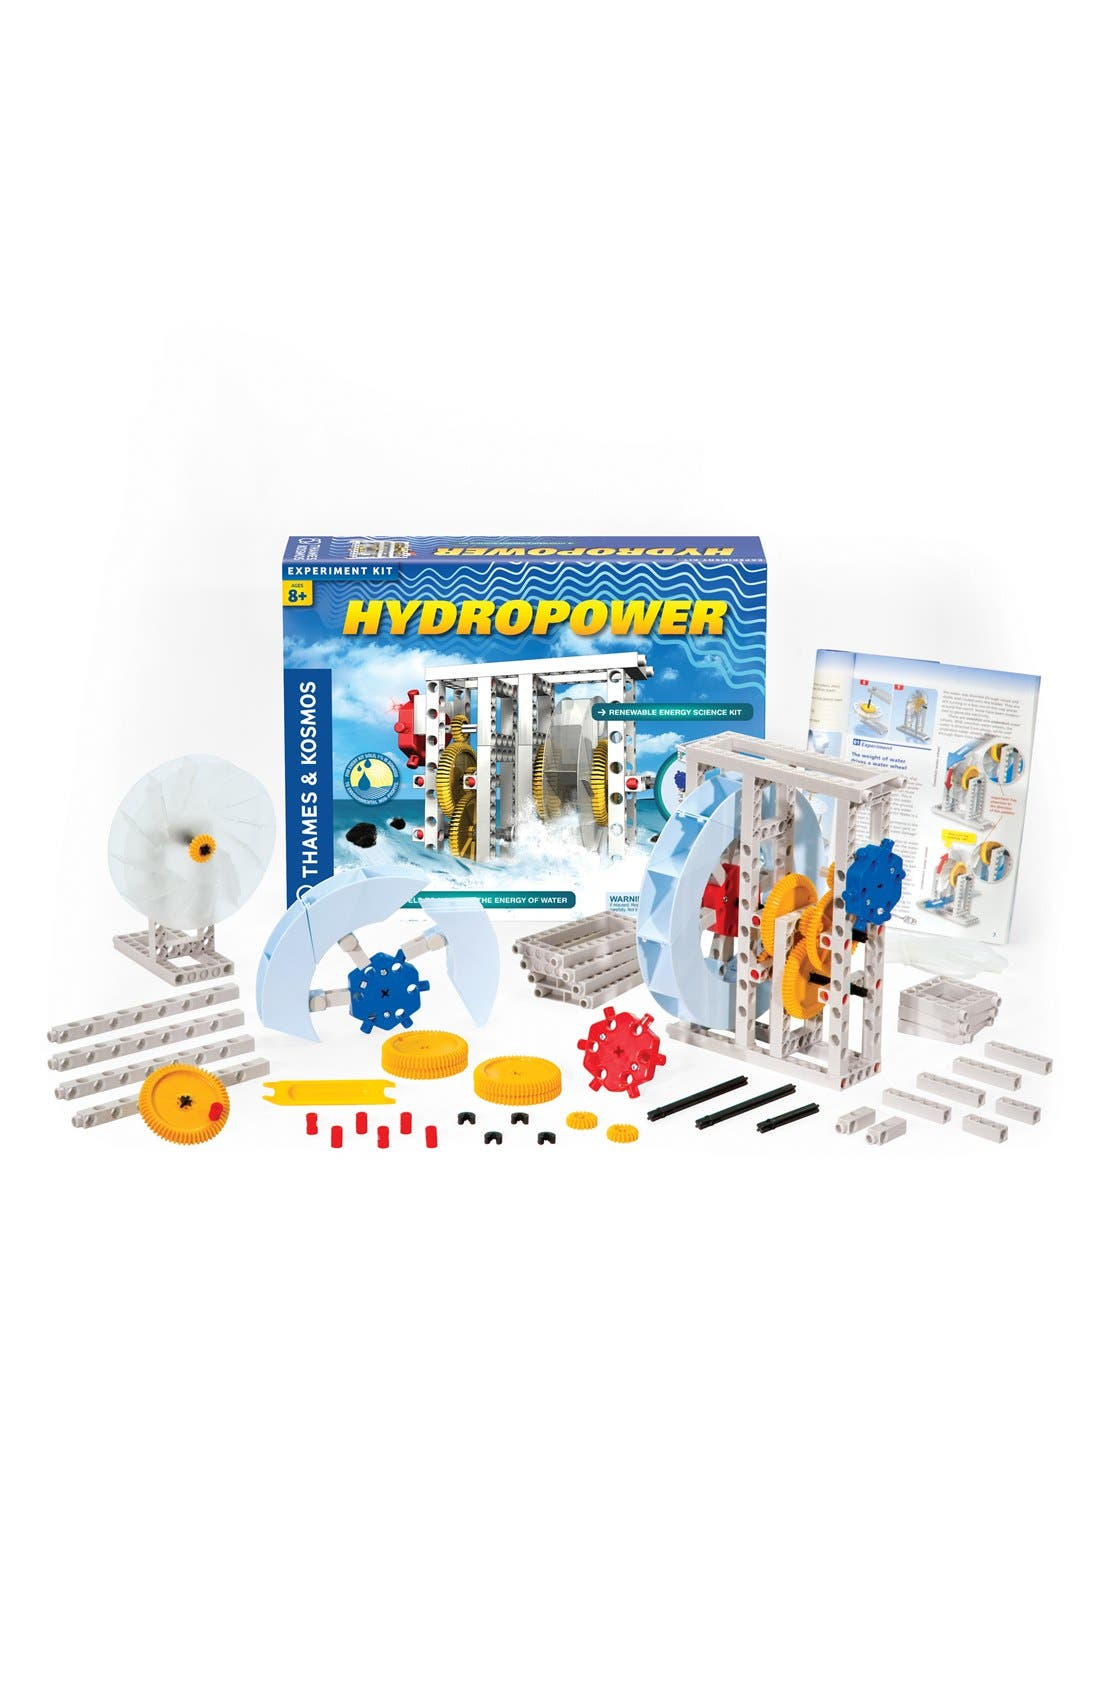 'Hydropower' Experiment Kit,                         Main,                         color,